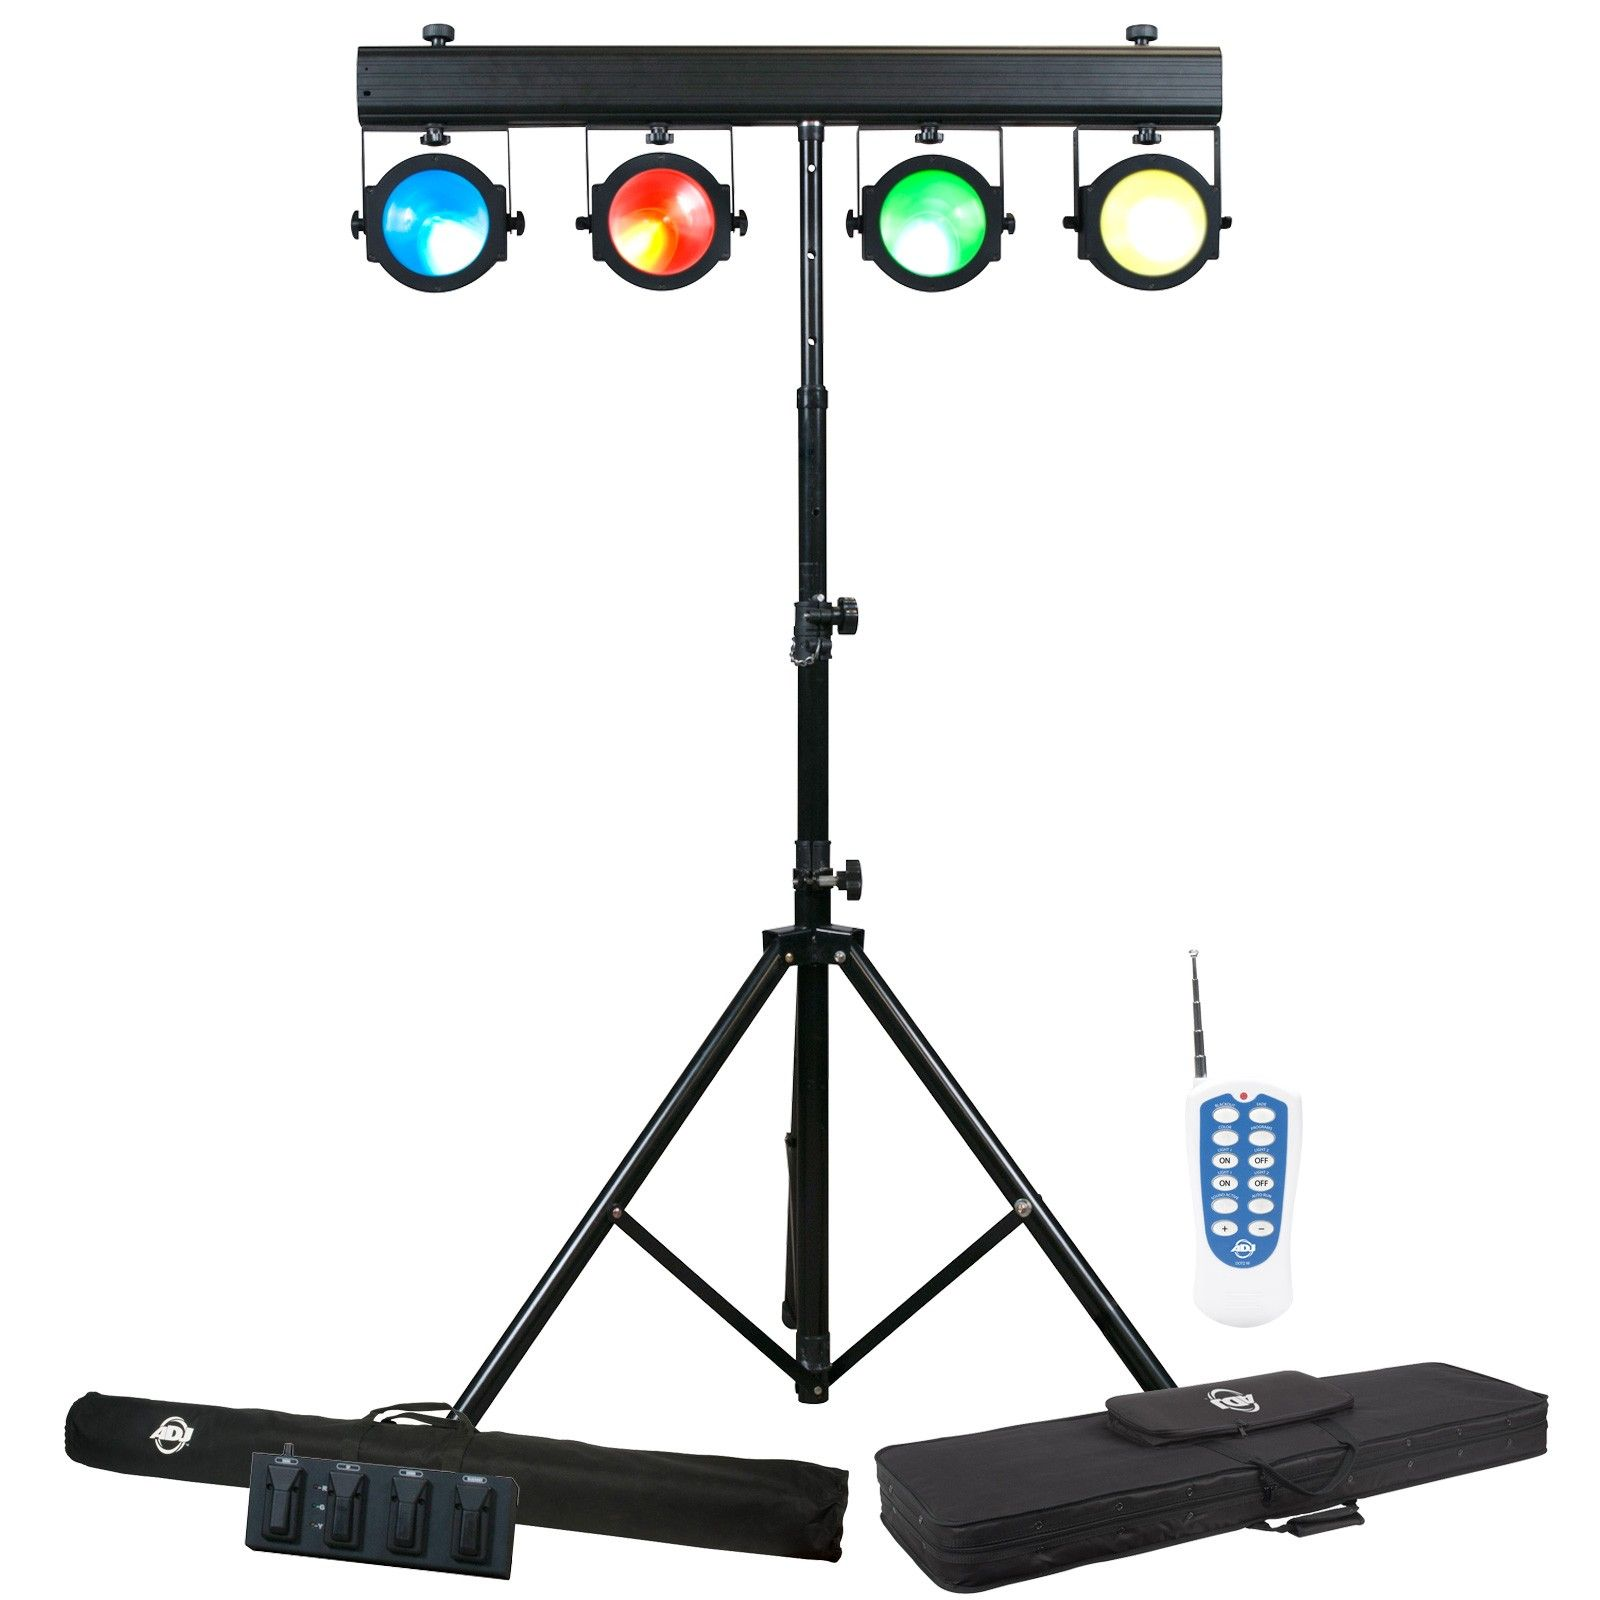 All-in-one lighting solutions have been all the rage the past few years, and I for one am grateful for it. After purchasing a Chauvet GigBar LT around a year and a half ago I was amazed at the ease of use, simplicity, and effectiveness of these compact lighting systems. Instead of spending 10-15...